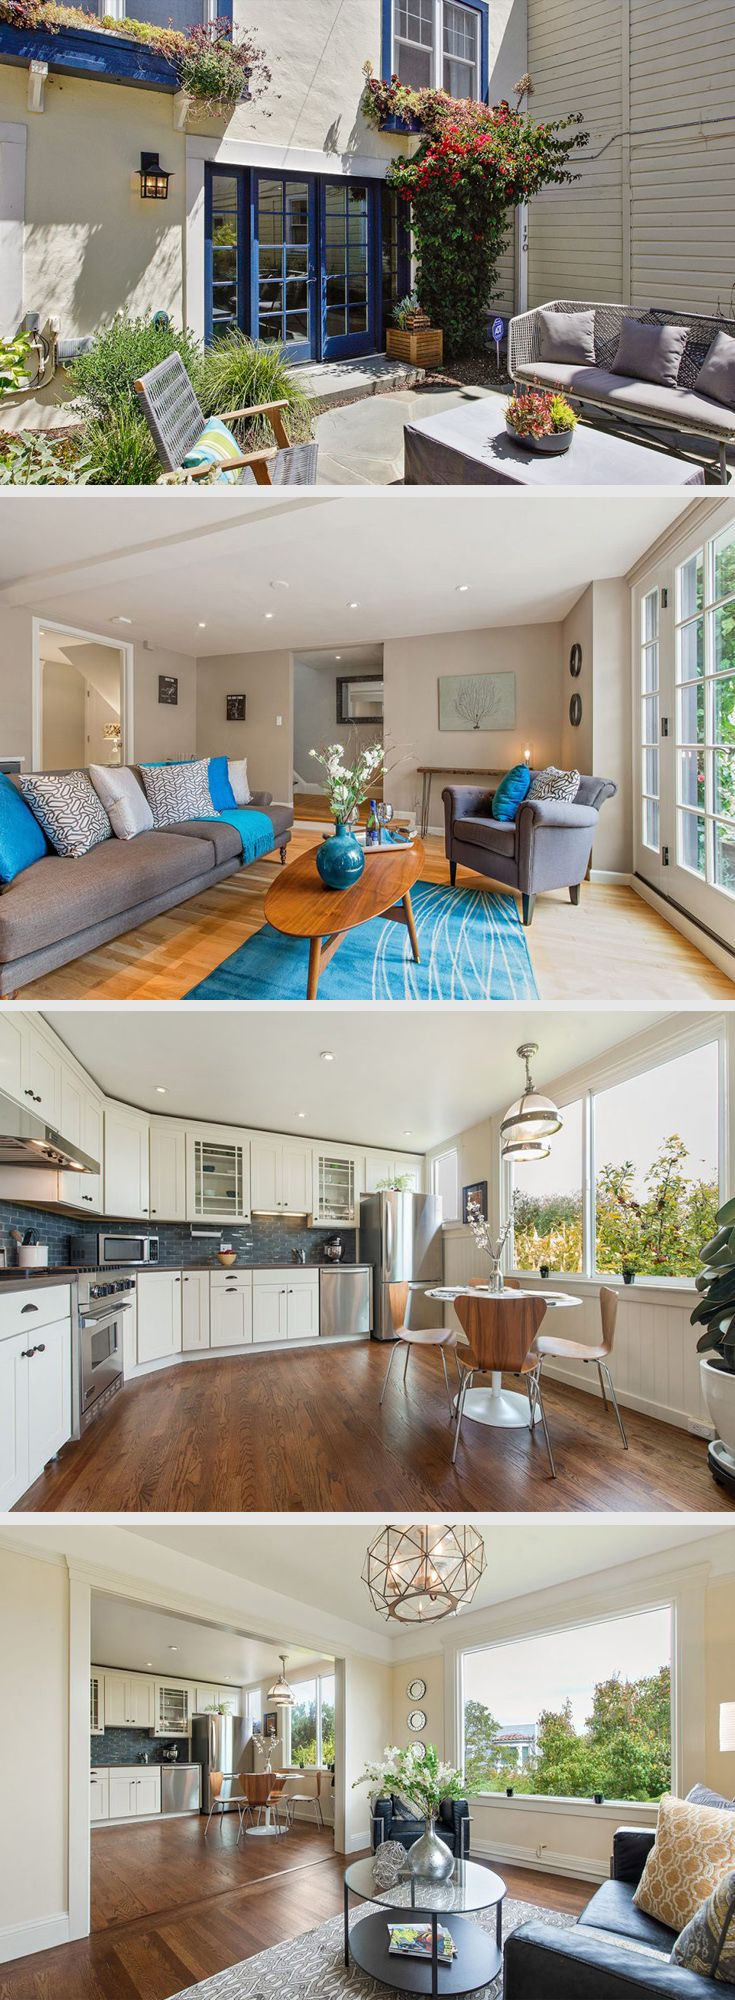 Detached House-Like Condo with Garden and Views in Glen Park on the Cusp of Noe Valley:  http://daniellelazier.com/listings/170-fairmount-street-san-francisco-ca-94131/